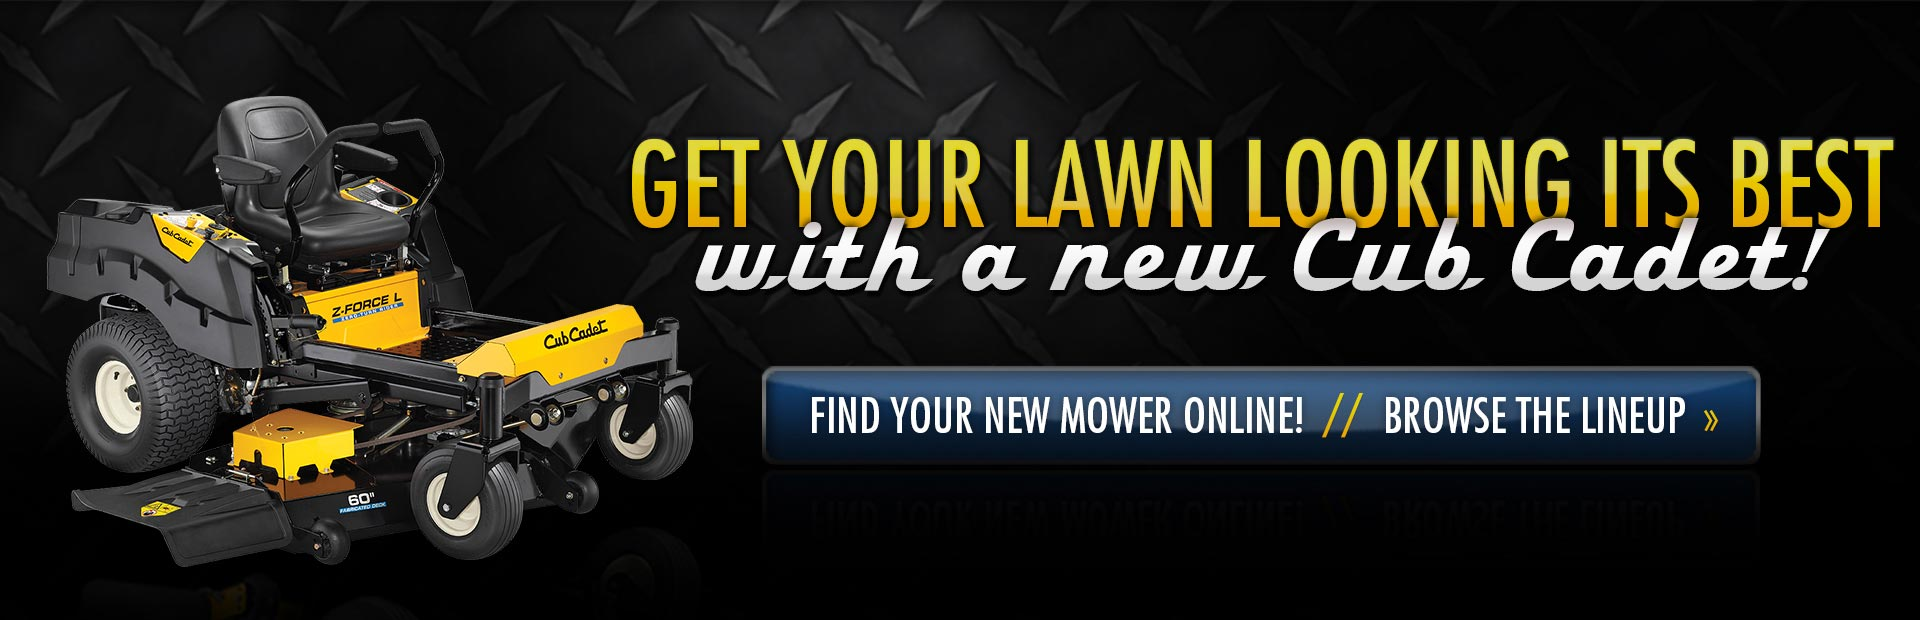 Click here to view Cub Cadet lawn mowers!